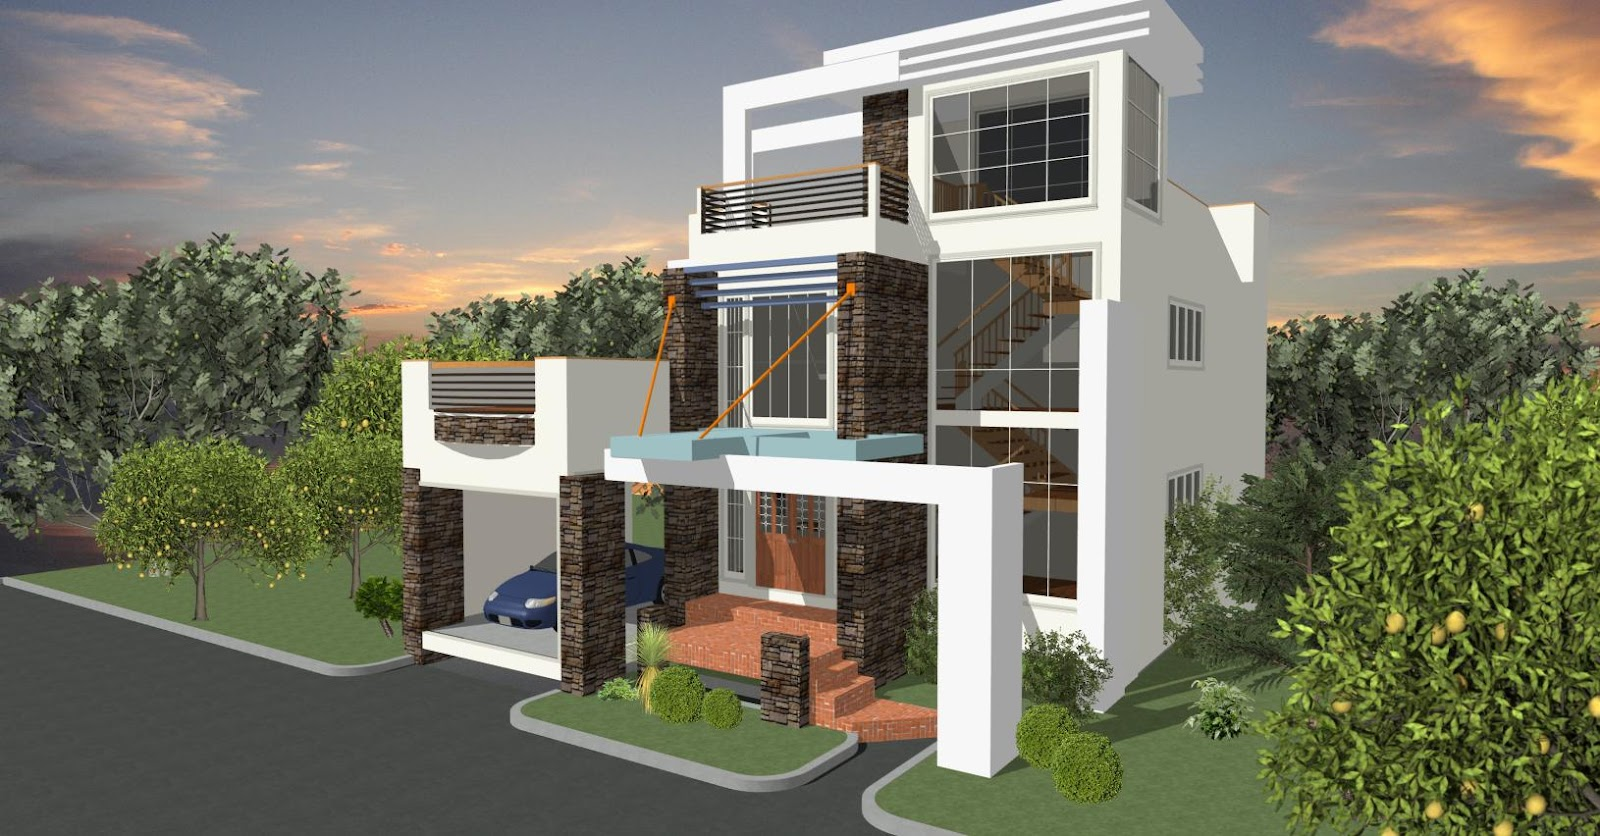 Dream home designs erecre group realty design and for Houses models